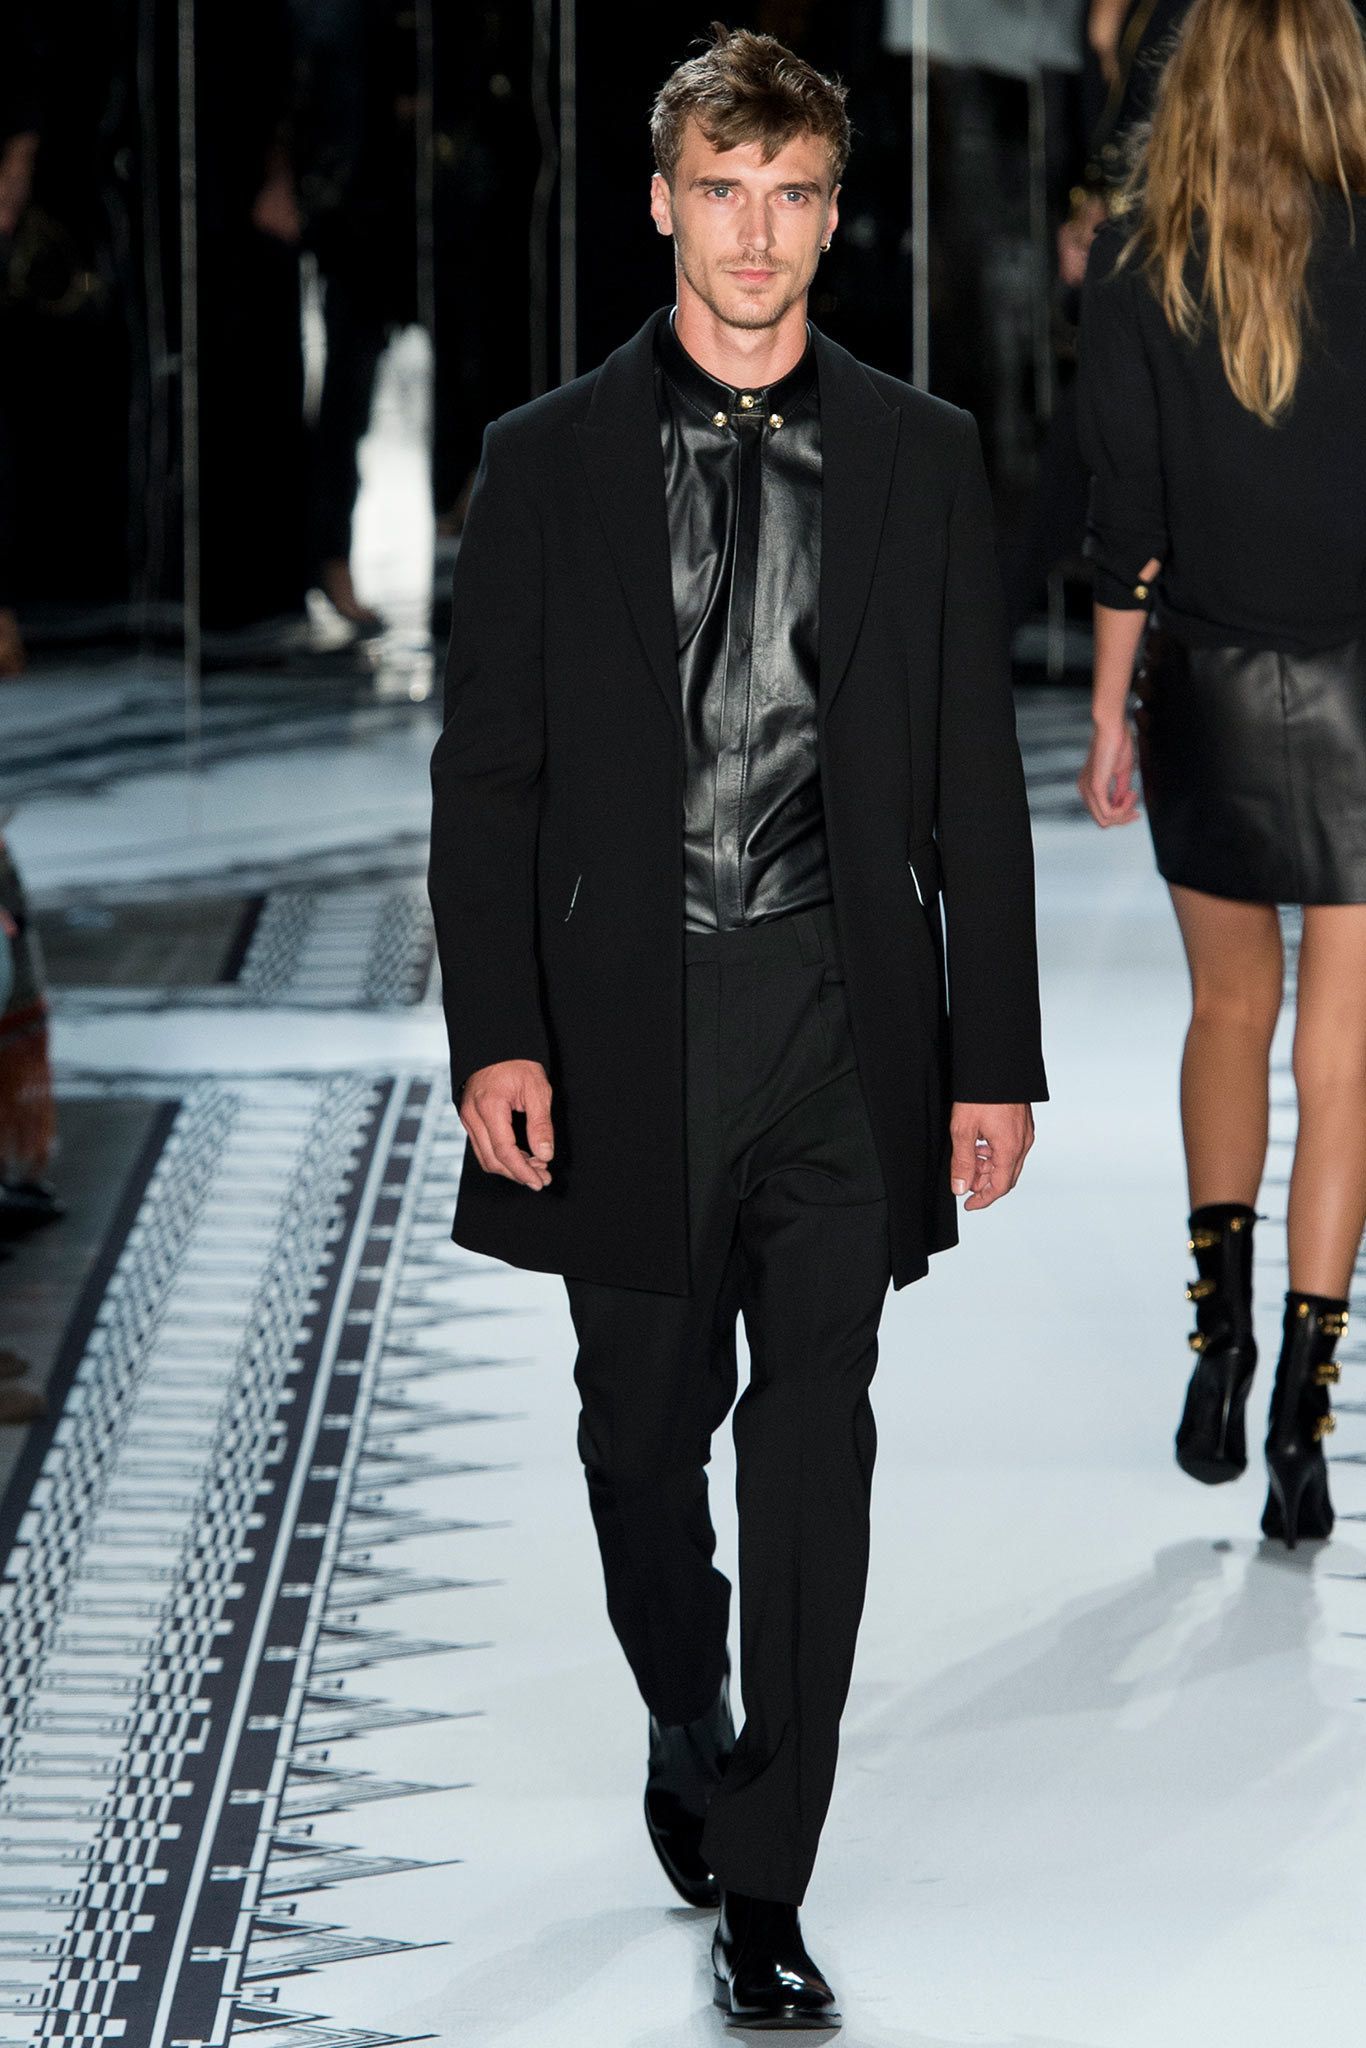 Versus Versace Spring 2015 Ready-to-Wear Fashion Show - Clement Chabernaud